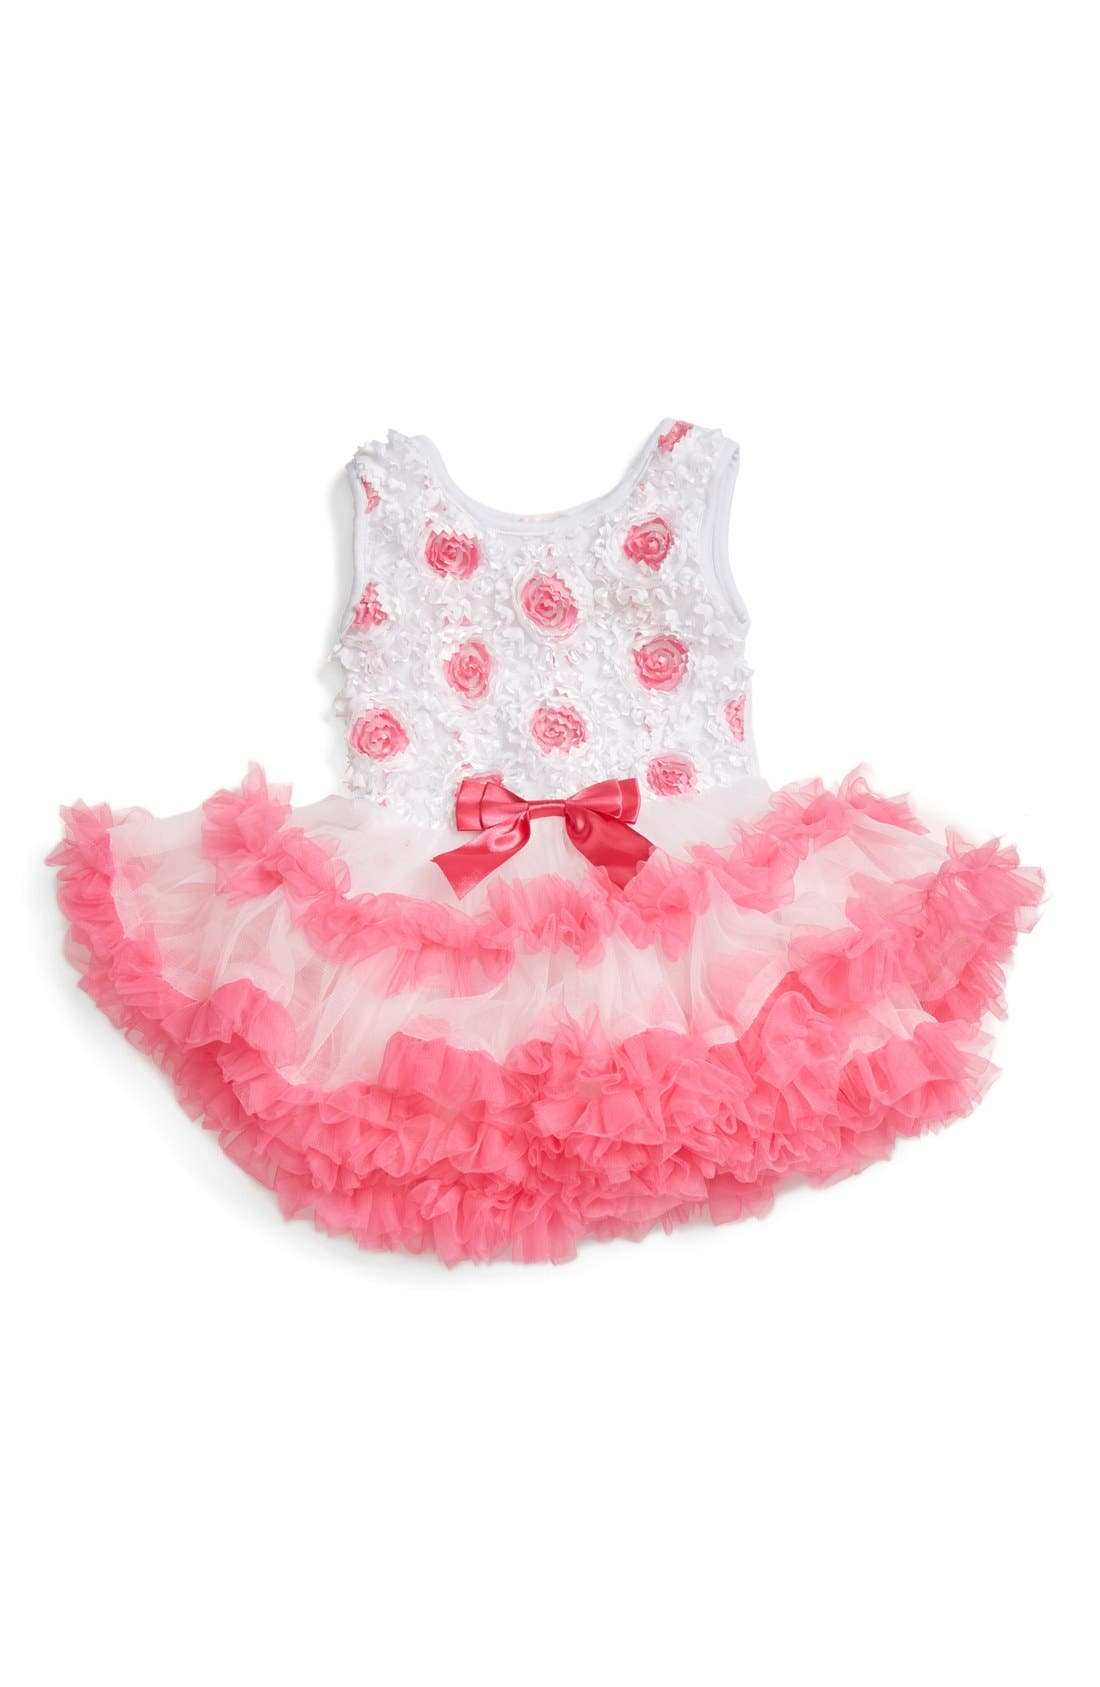 Main Image - Popatu Ribbon Rosette Flower Pettidress (Baby Girls)